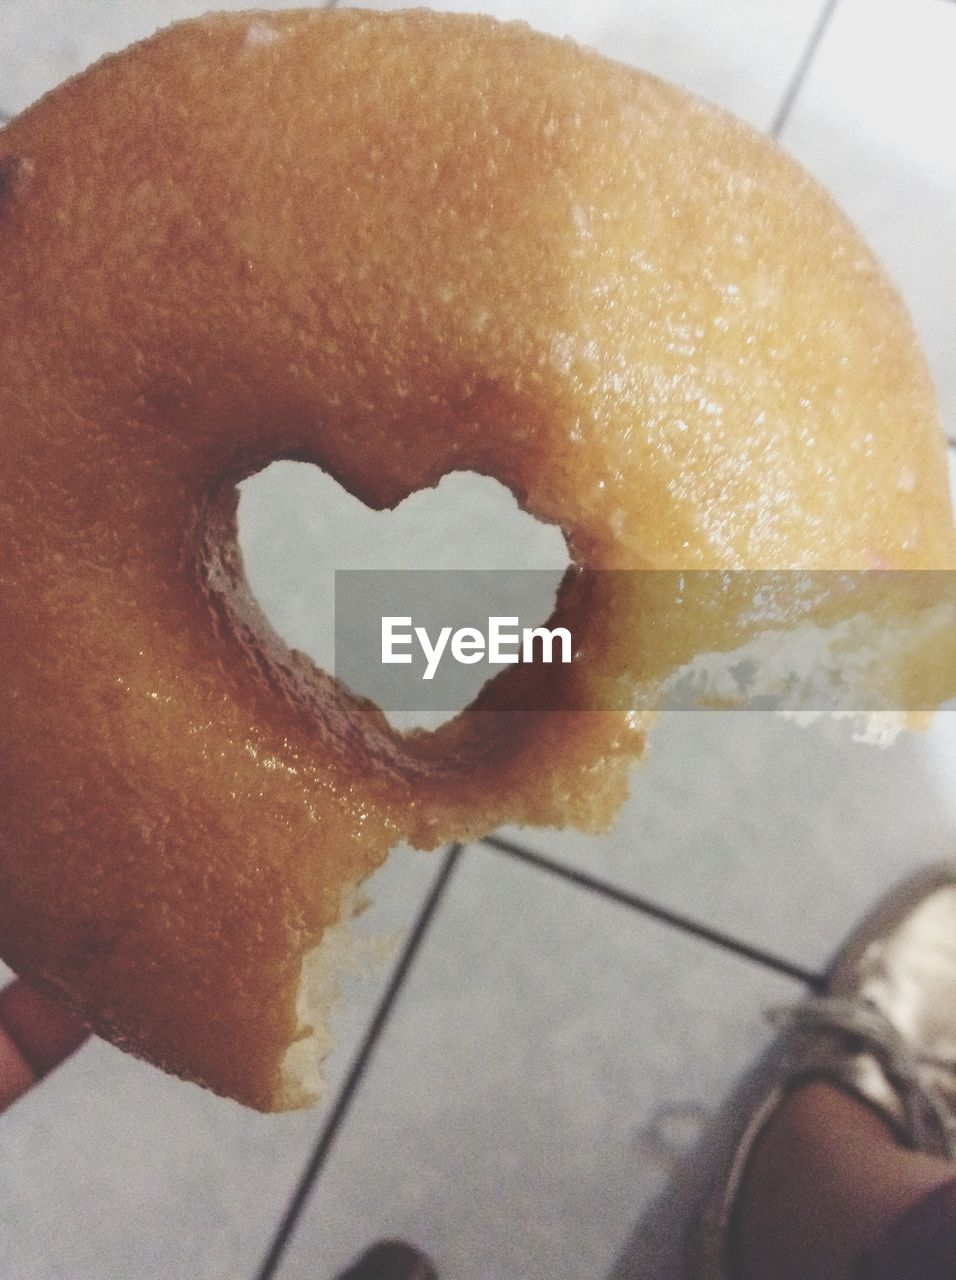 food and drink, food, sweet food, one person, human body part, temptation, human hand, freshness, indulgence, indoors, unhealthy eating, dessert, holding, real people, close-up, ready-to-eat, donut, day, people